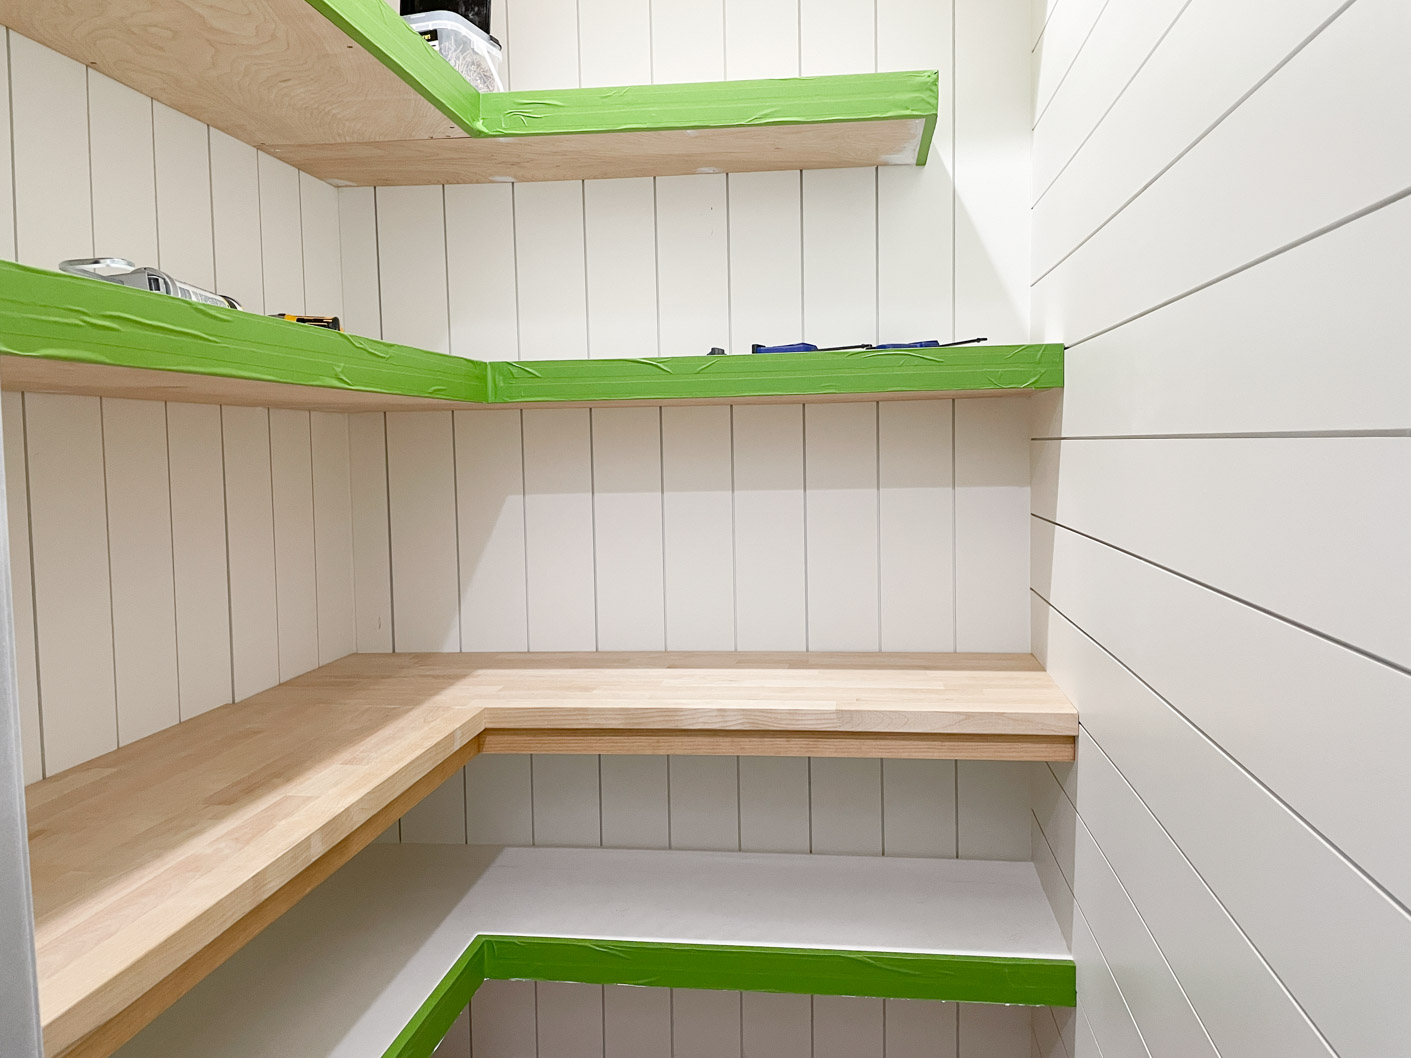 a picture showing white shiplap walls, wooden shelves and a wooden countertop